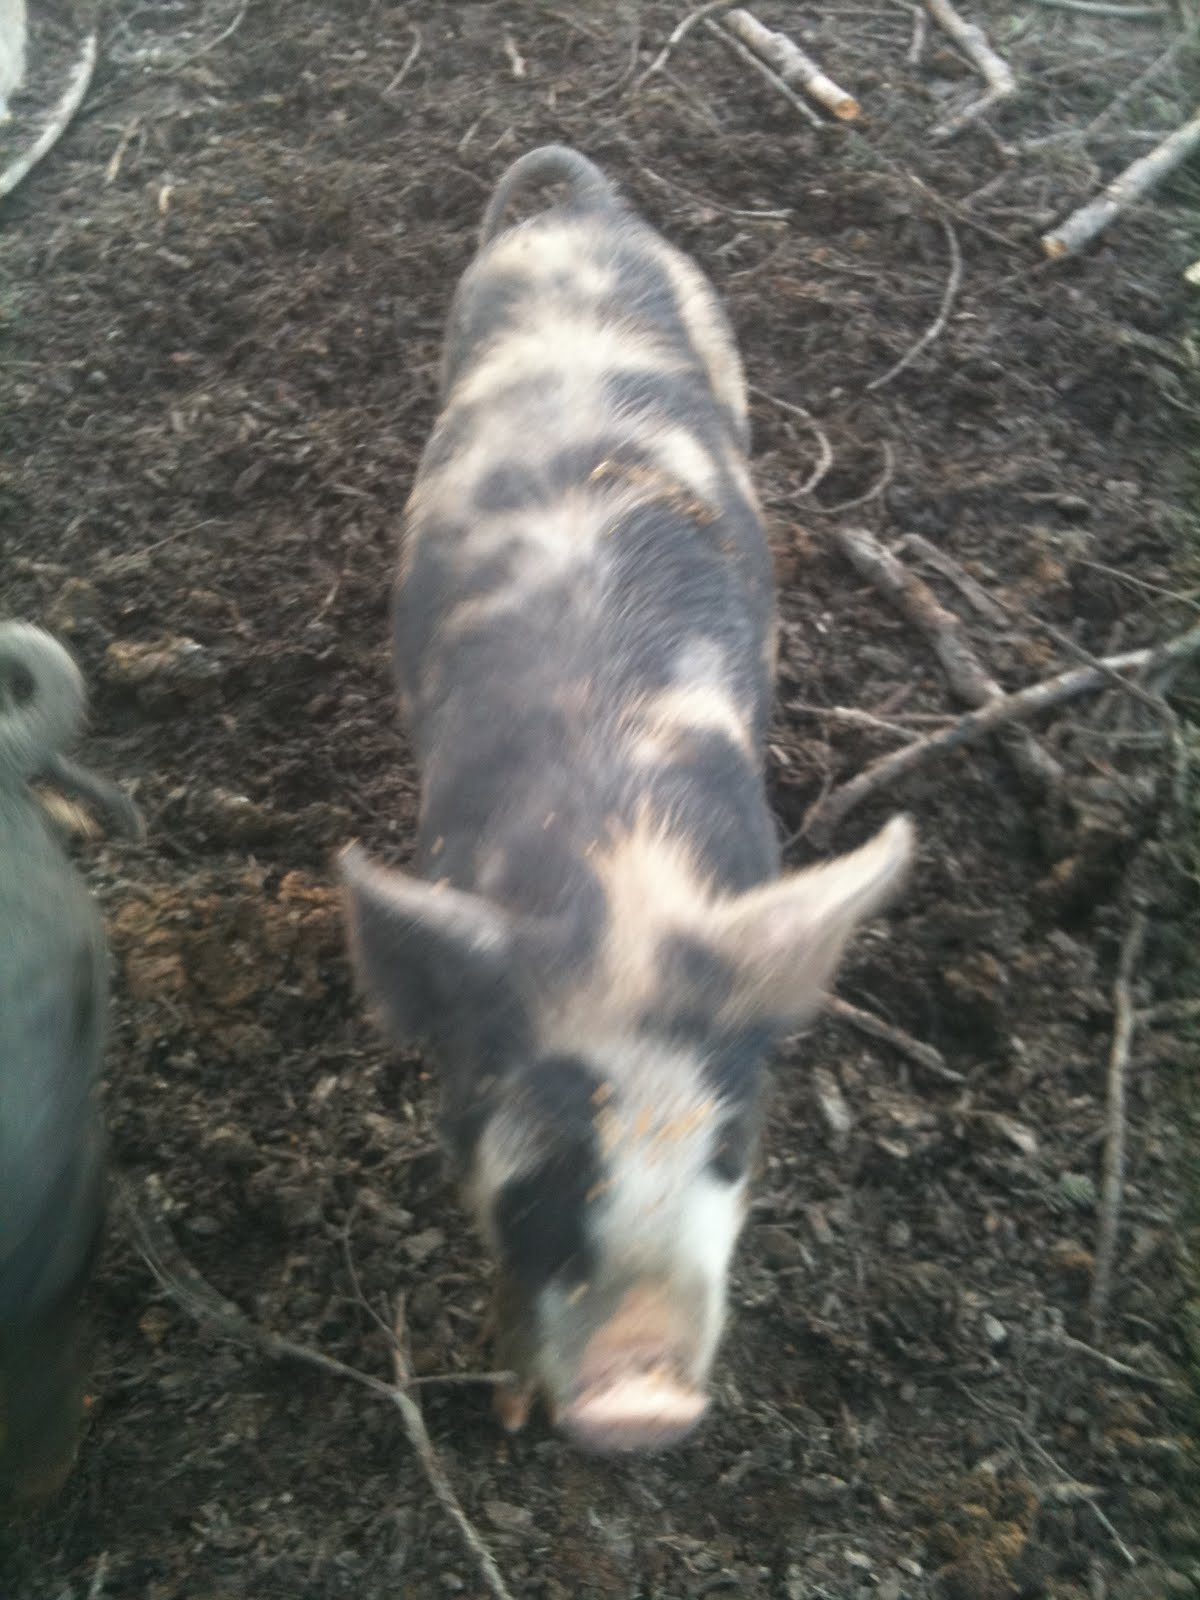 This Size Pig Is Pretty Bombproof. If Youu0027re Interested In Raising Your Own  Pork, Buying A Little Larger Pig Is Often A Good Bargain.